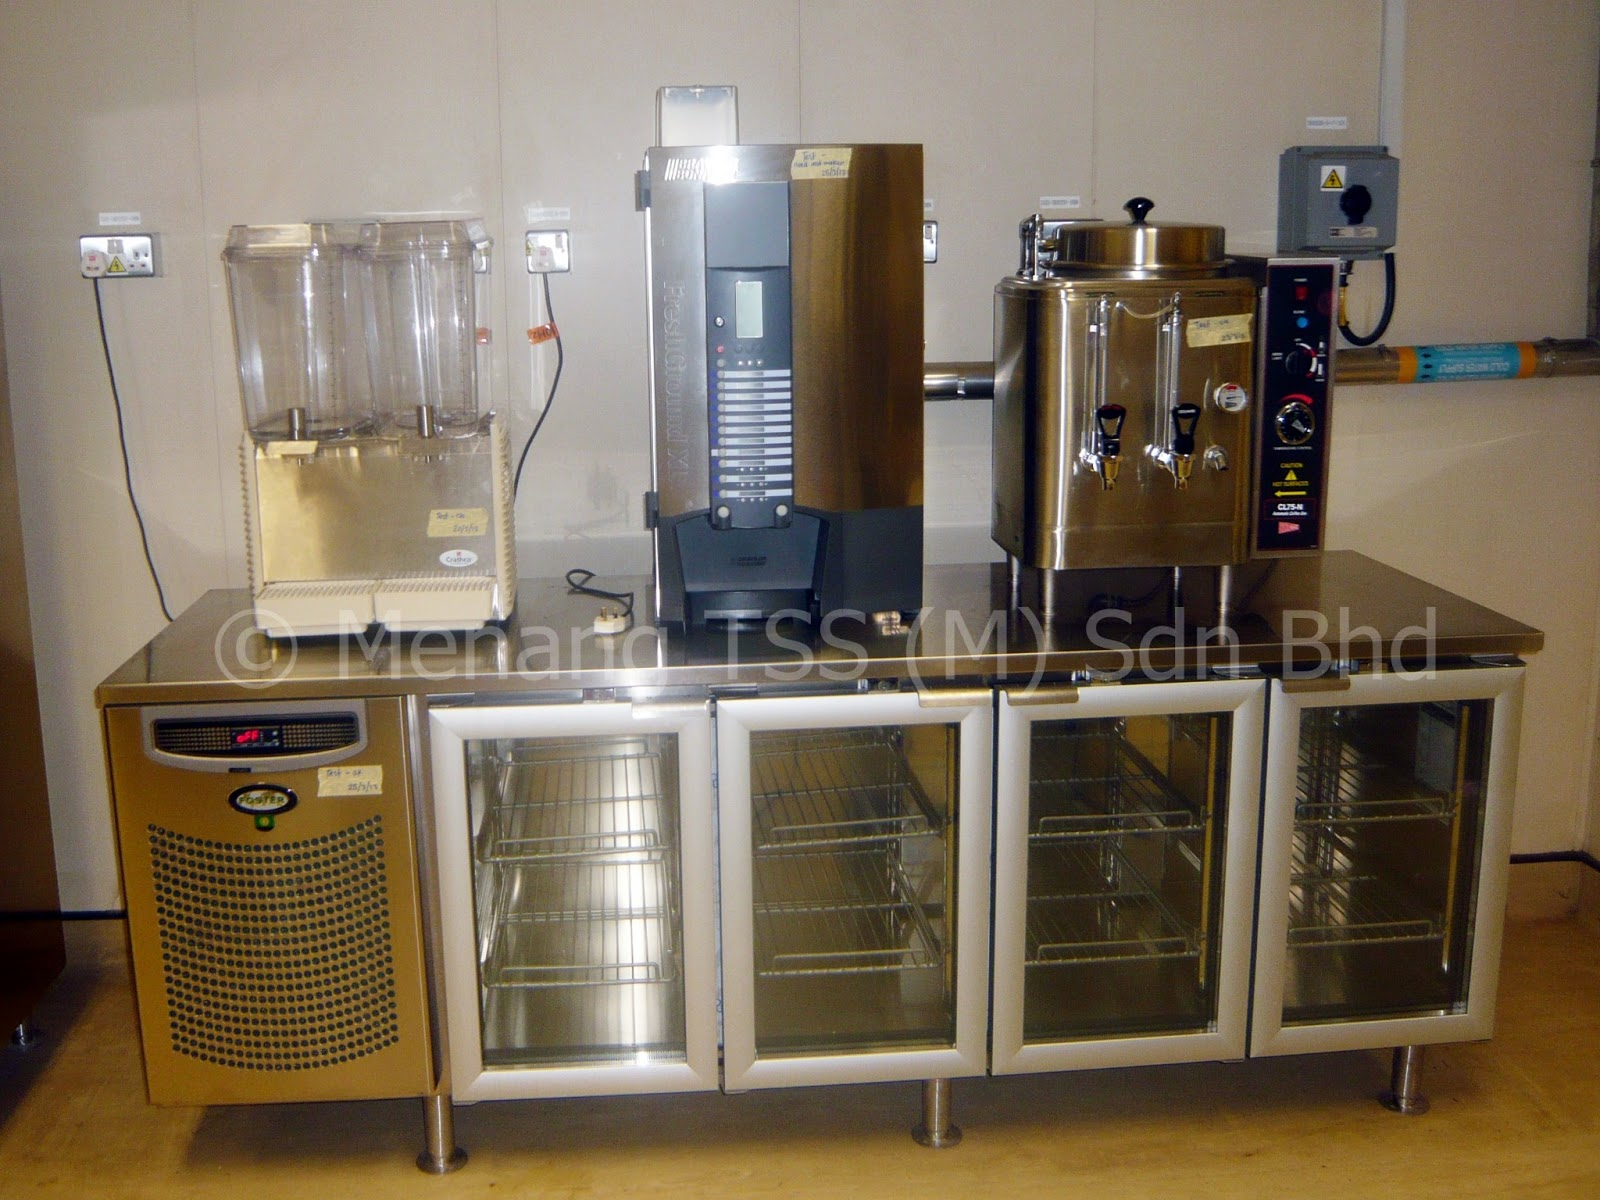 Commercial Kitchen Appliances  Menang Tss (m) Sdn Bhd. Kmart Dining Room Chairs. Rug Placement In Living Room. Wicker Chairs Dining Room. Round Formal Dining Room Tables. Choosing Paint Colors For Living Room Walls. Living Room Pictures Decorating Ideas. Living Room Colors With Black Furniture. Cozy Chic Living Rooms